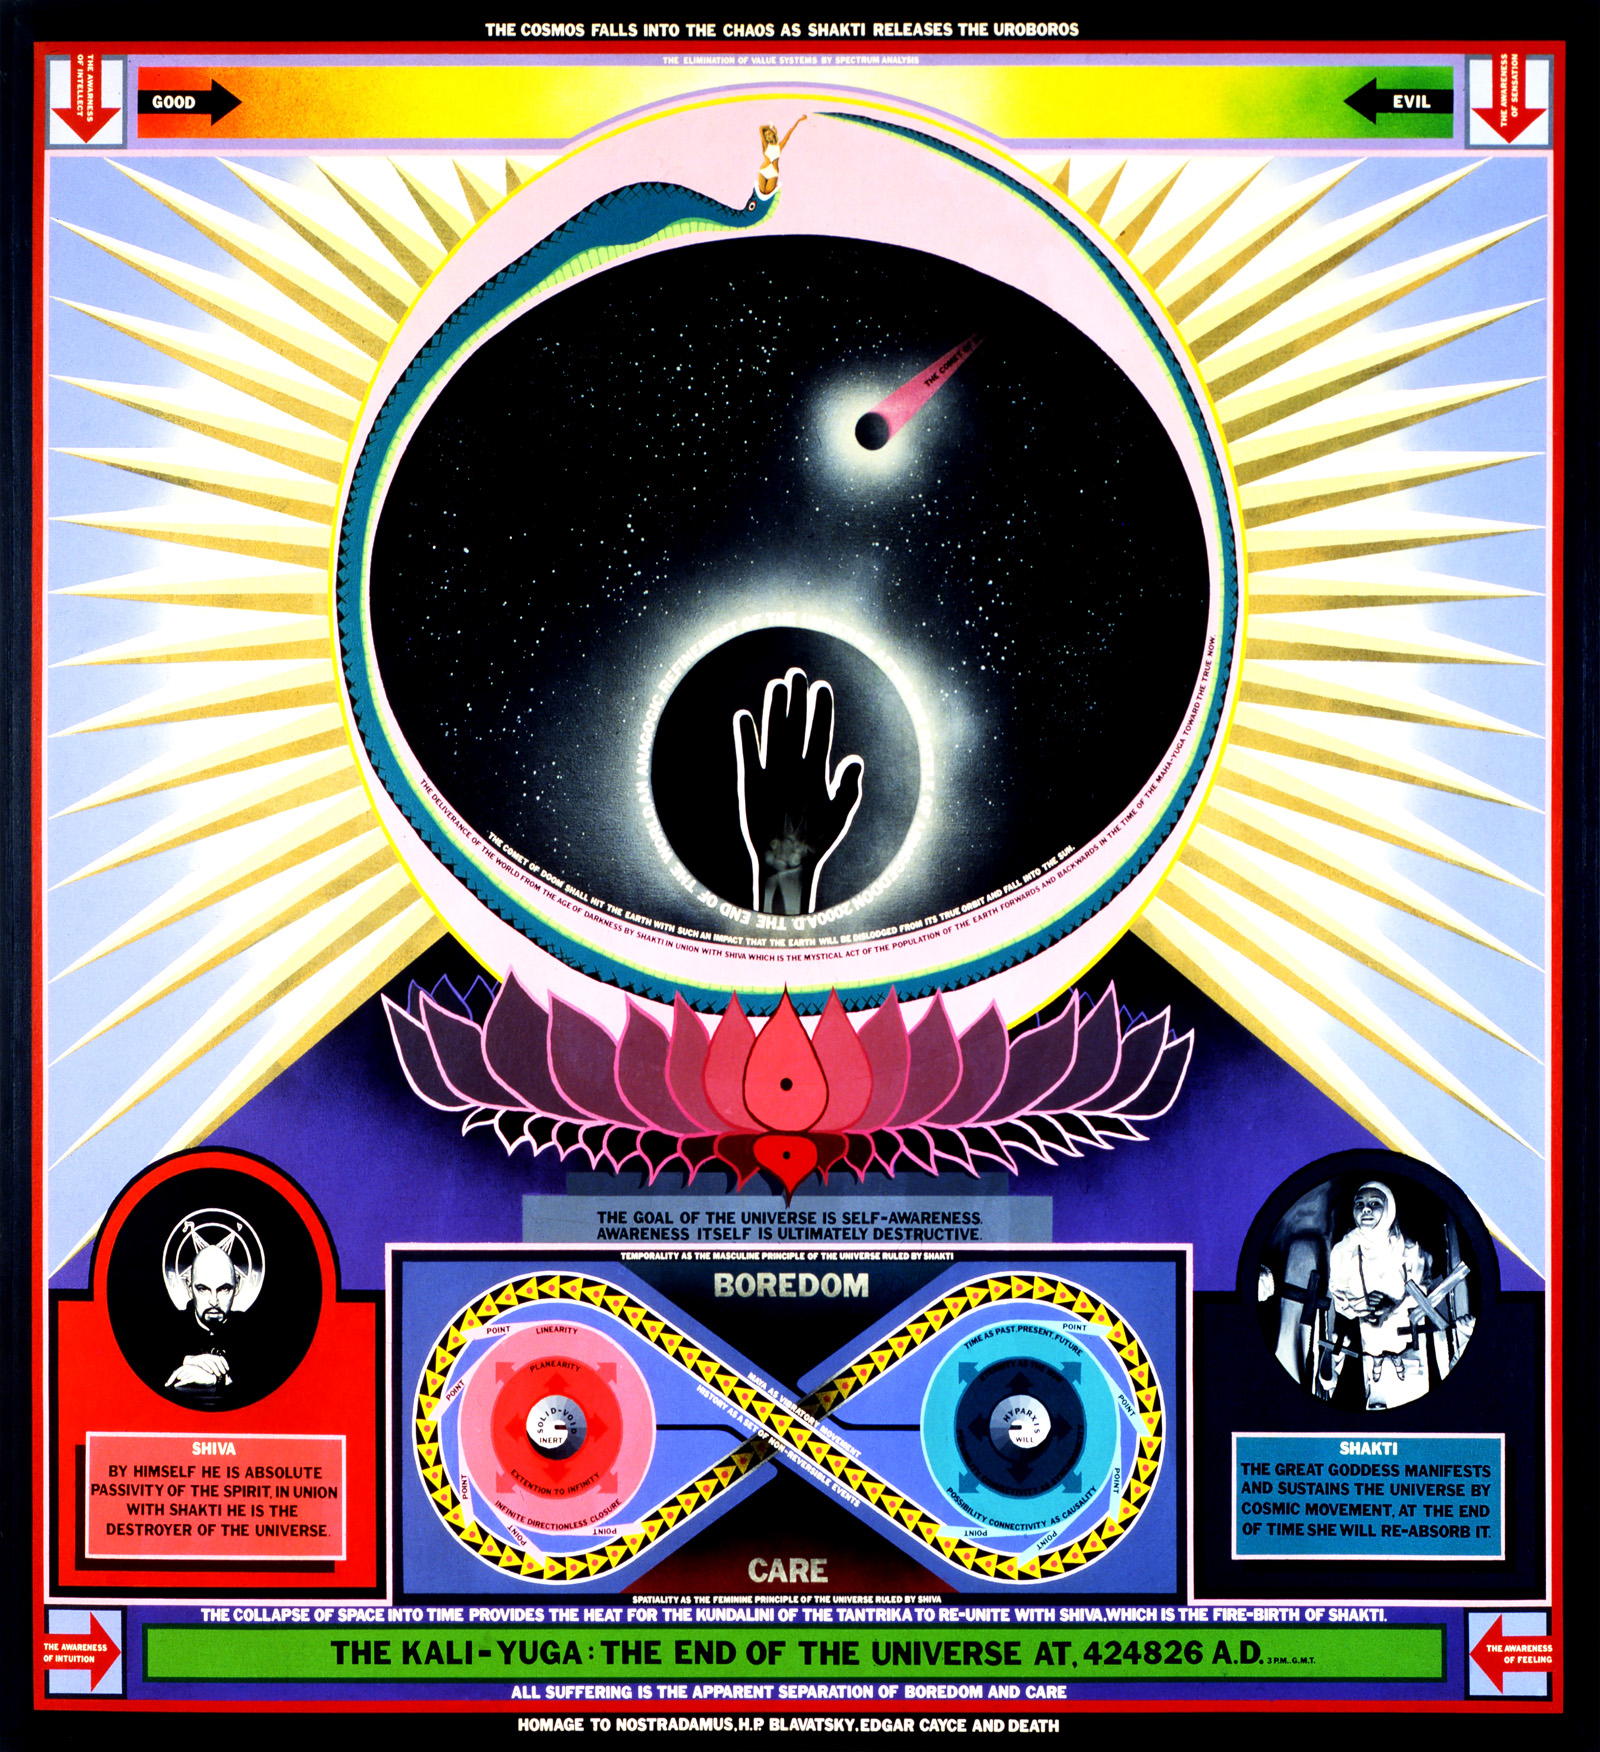 The Kali-Yuga: The End of the Universe at 424826 A.D. (The Cosmos Falls into the Chaos as  the Shakti Oroboros Leads to the Elimination of all Value Systems by Spectrum Analysis) (1965)